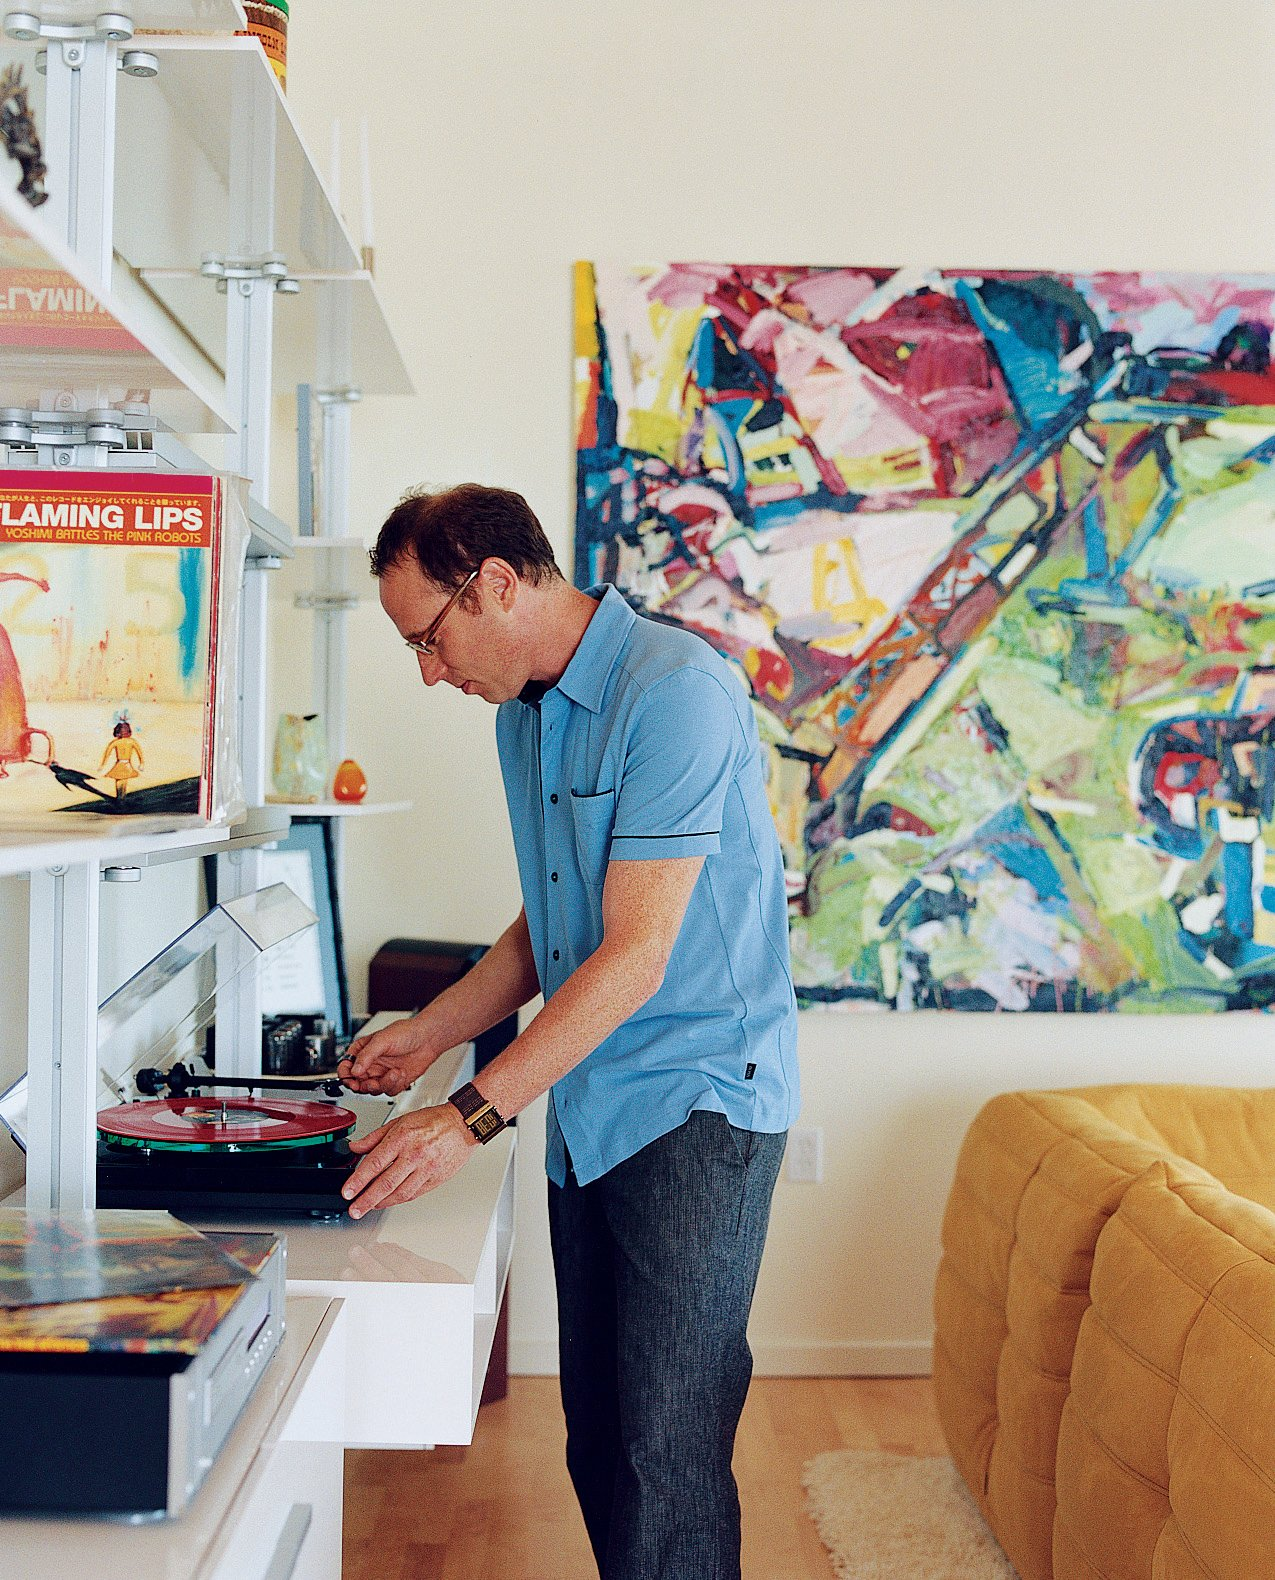 Randy Rapaport can't get enough of his favorite band, the Flaming Lips, and happily whiles away the hours spinning their records in his 1,000-square-foot loft. On the wall is a painting by Timothy Scott Dalbow that Rapaport picked up from the nearby New American Art Union Gallery.  Photo 2 of 10 in Community Building